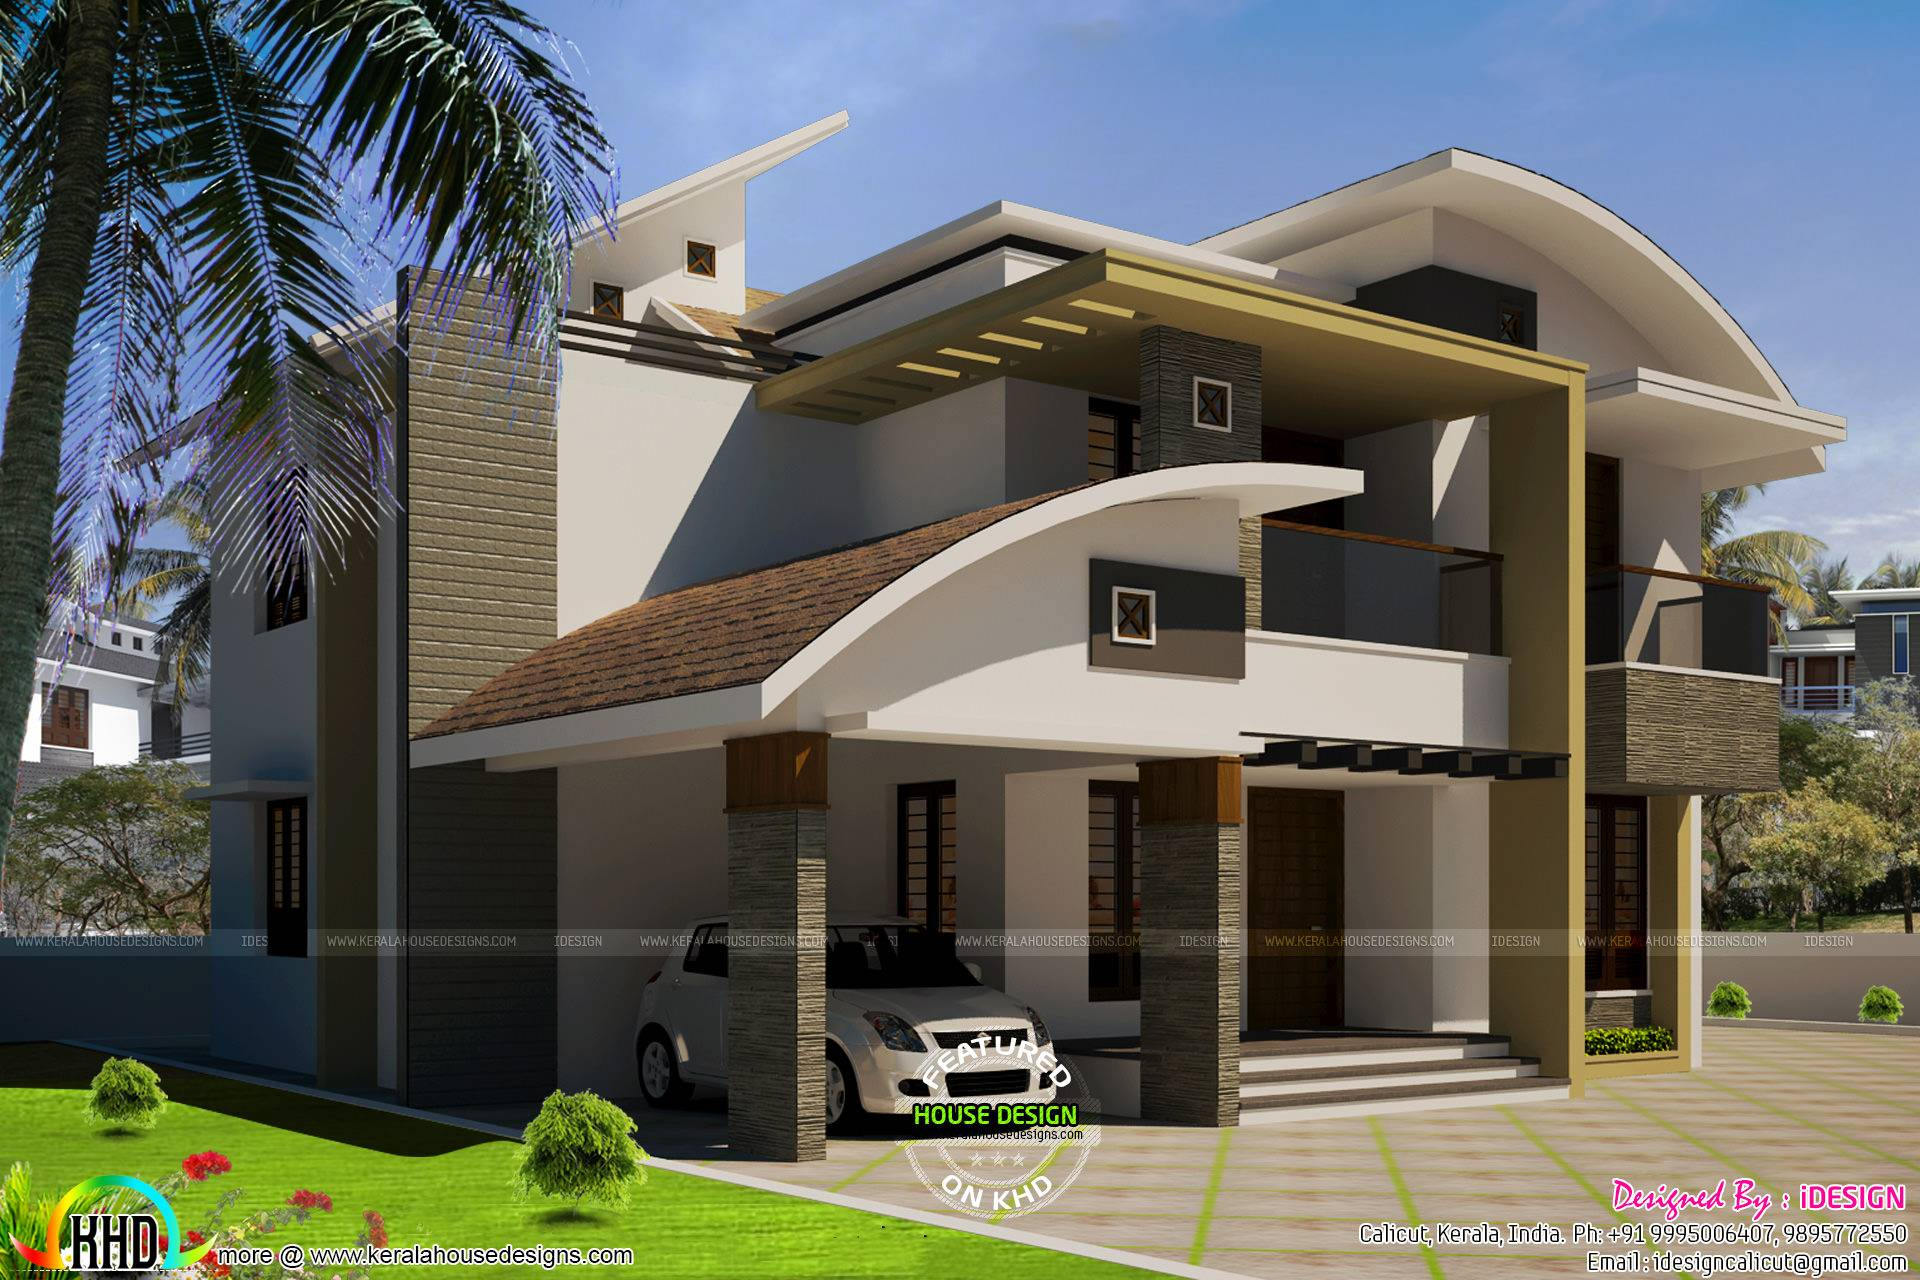 Modern Curved Roof Home Kerala Design House Plans 136255